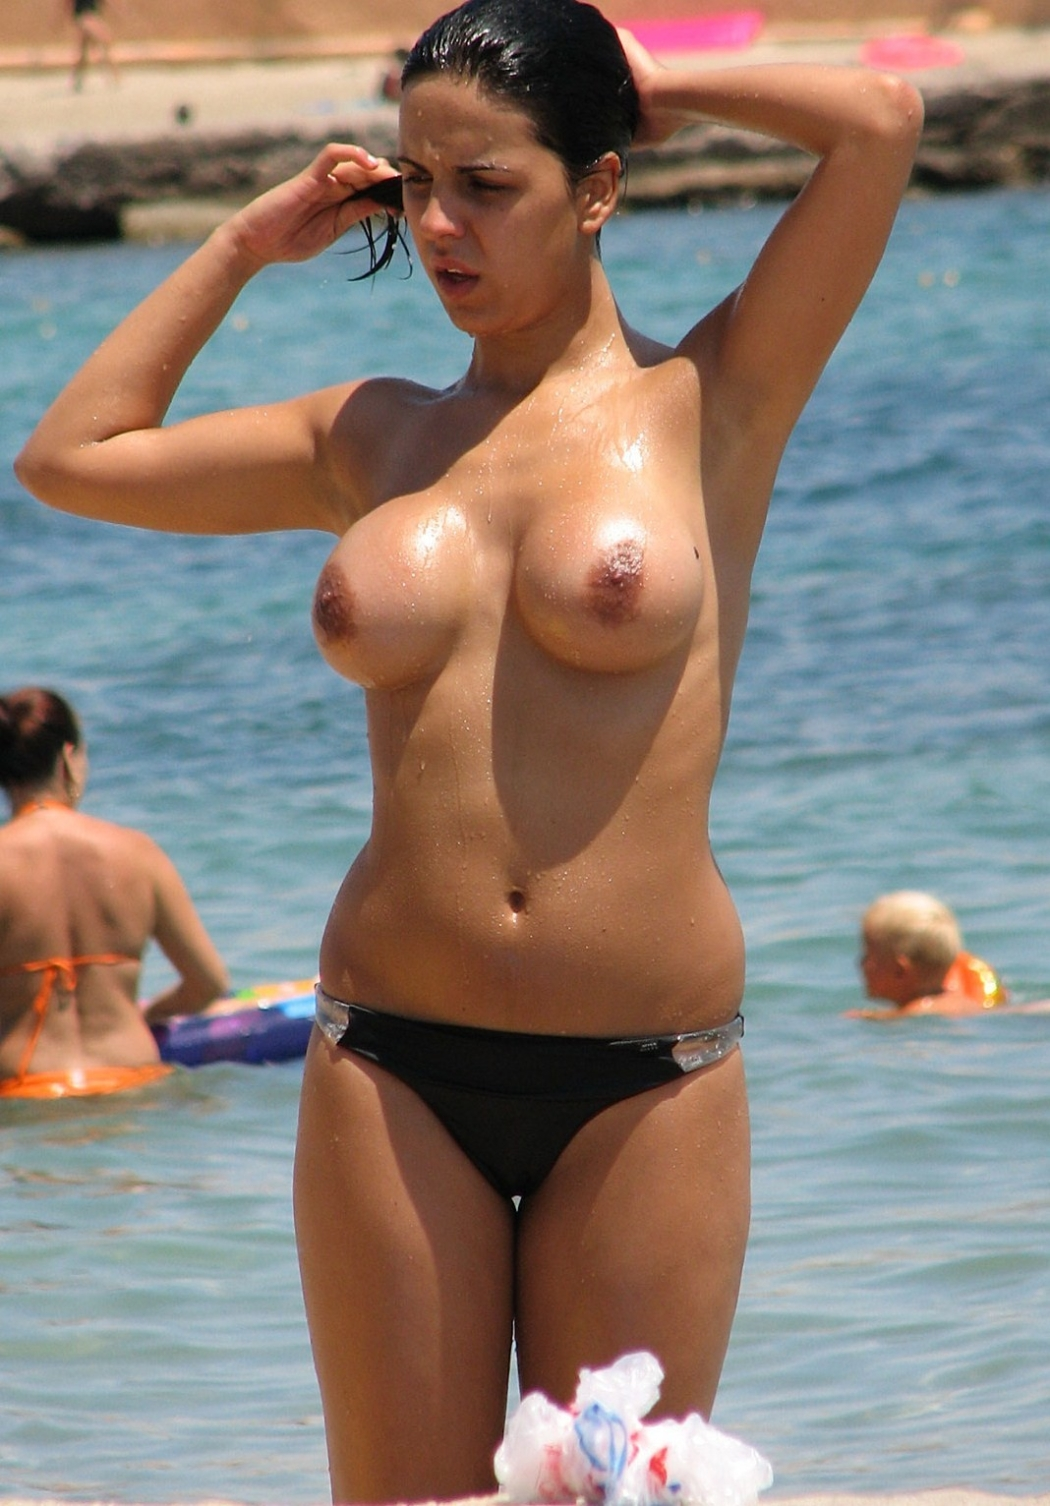 Curvy brunette swimming topless